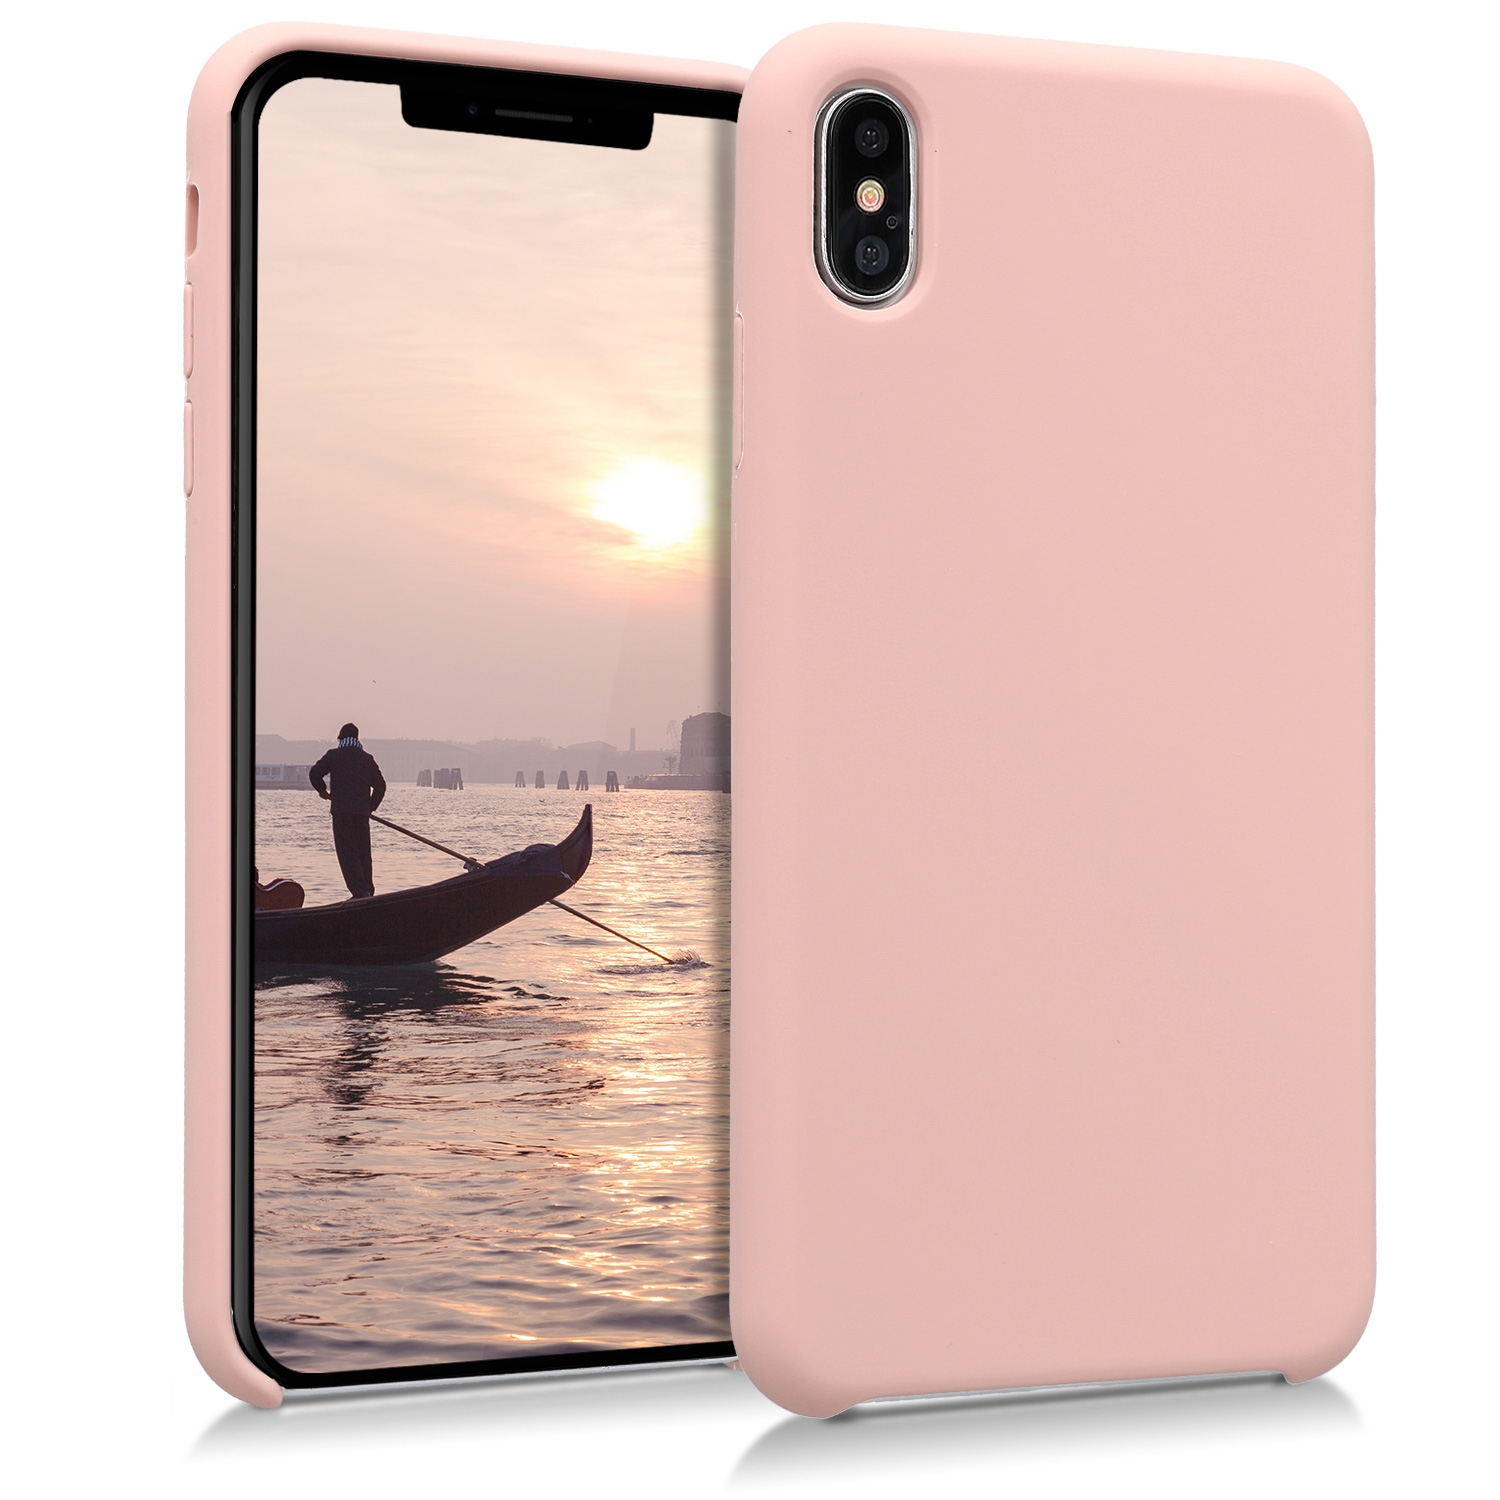 KW Soft Flexible Rubber Θήκη Σιλικόνης iPhone XS Max - Antique Pink (45909.10)